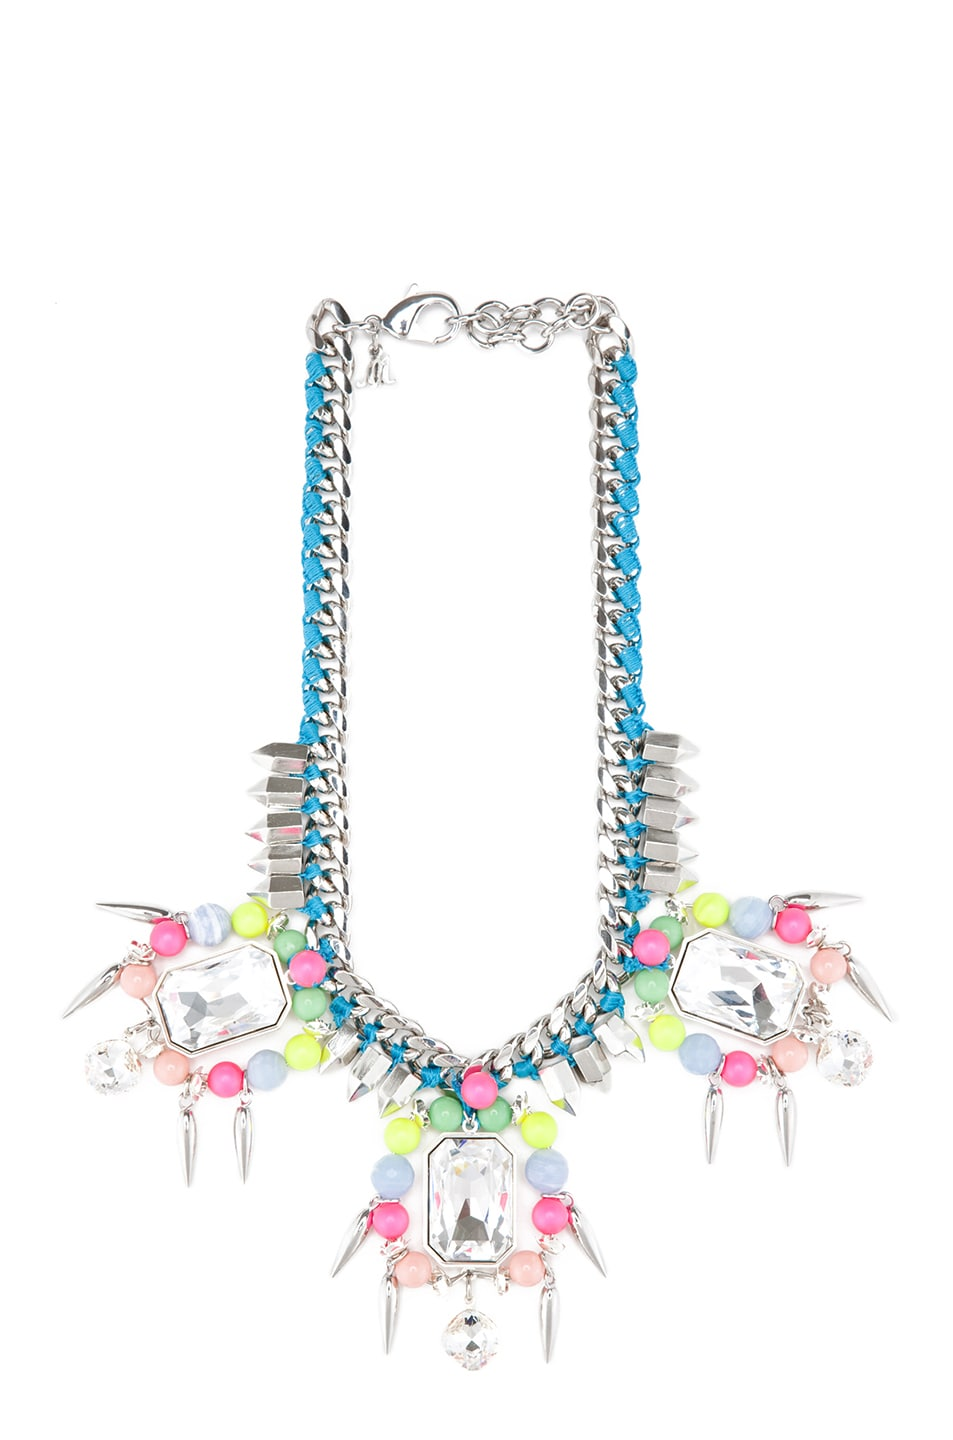 Image 1 of Assad Mounser Chroma Crypt Silver Plated Collar in Neon